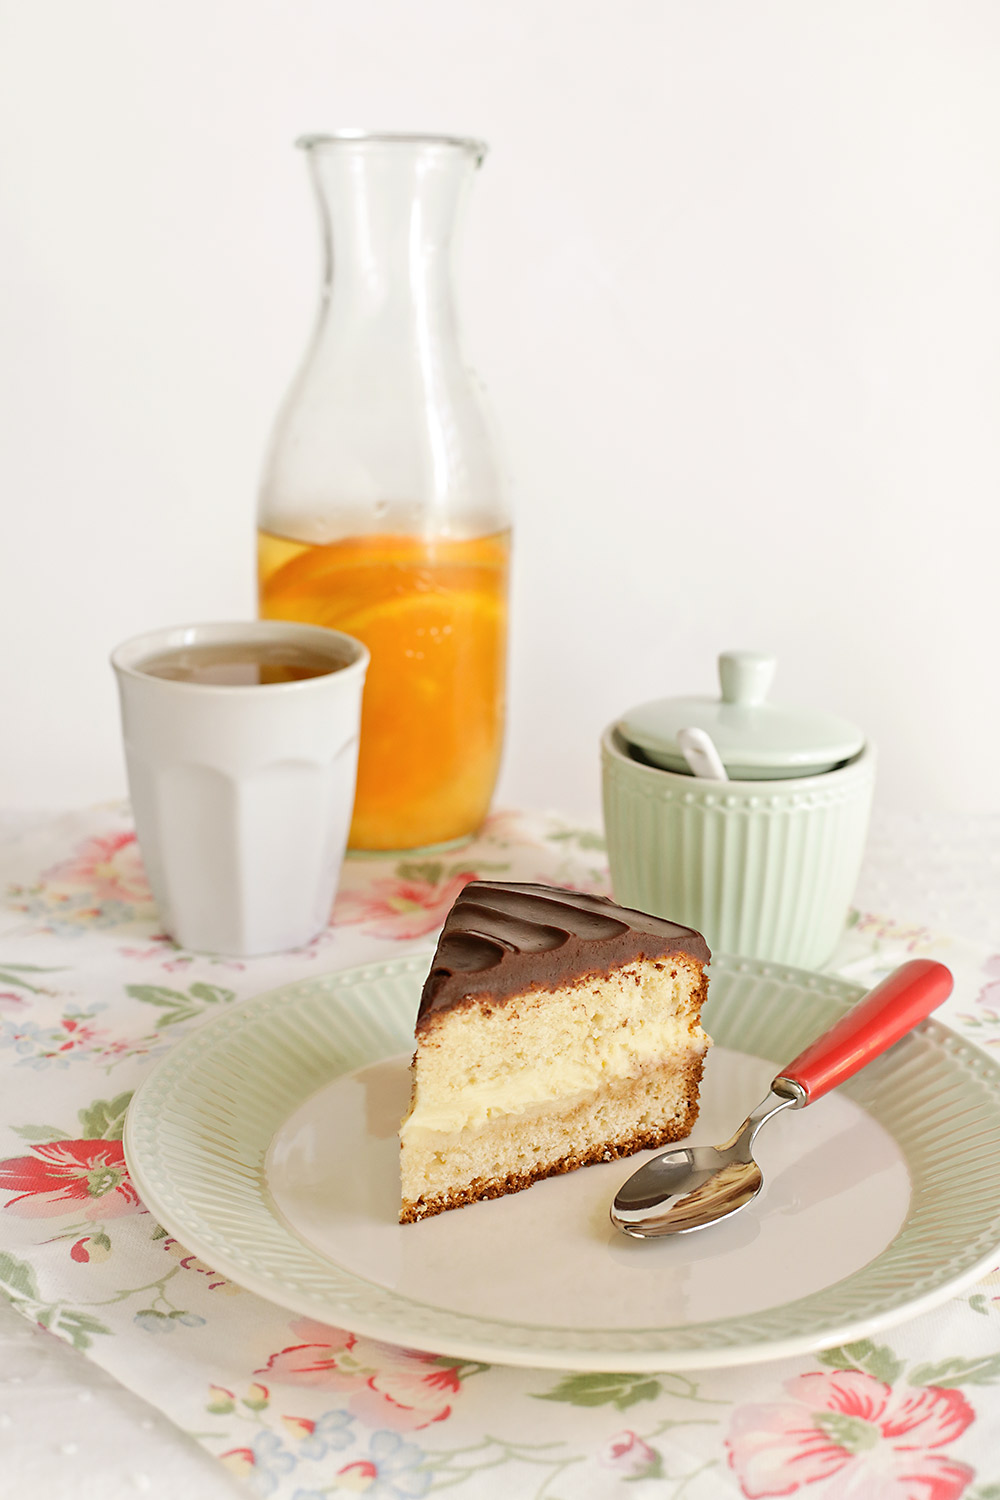 Receta de Boston cream pie 2